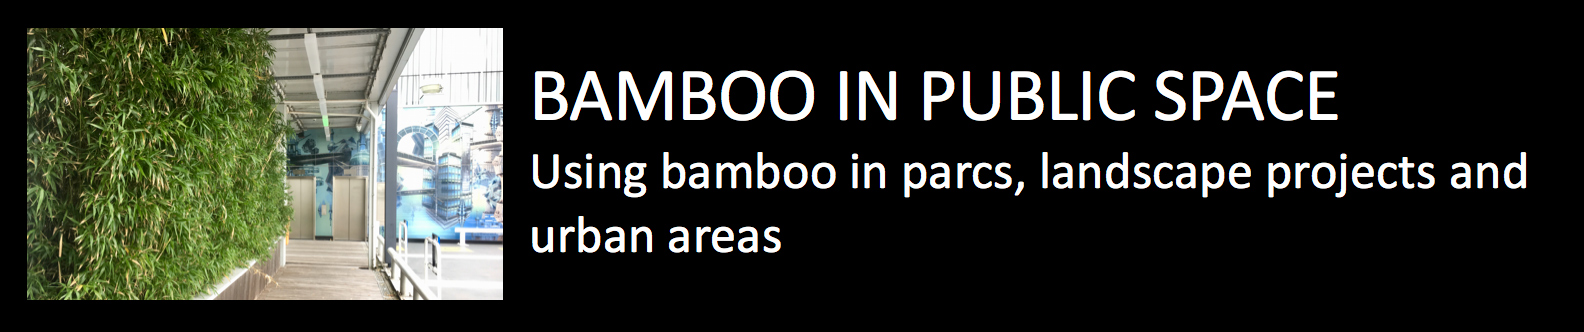 Bamboo in public space using bamboo in parcs landscape projects and urban areas